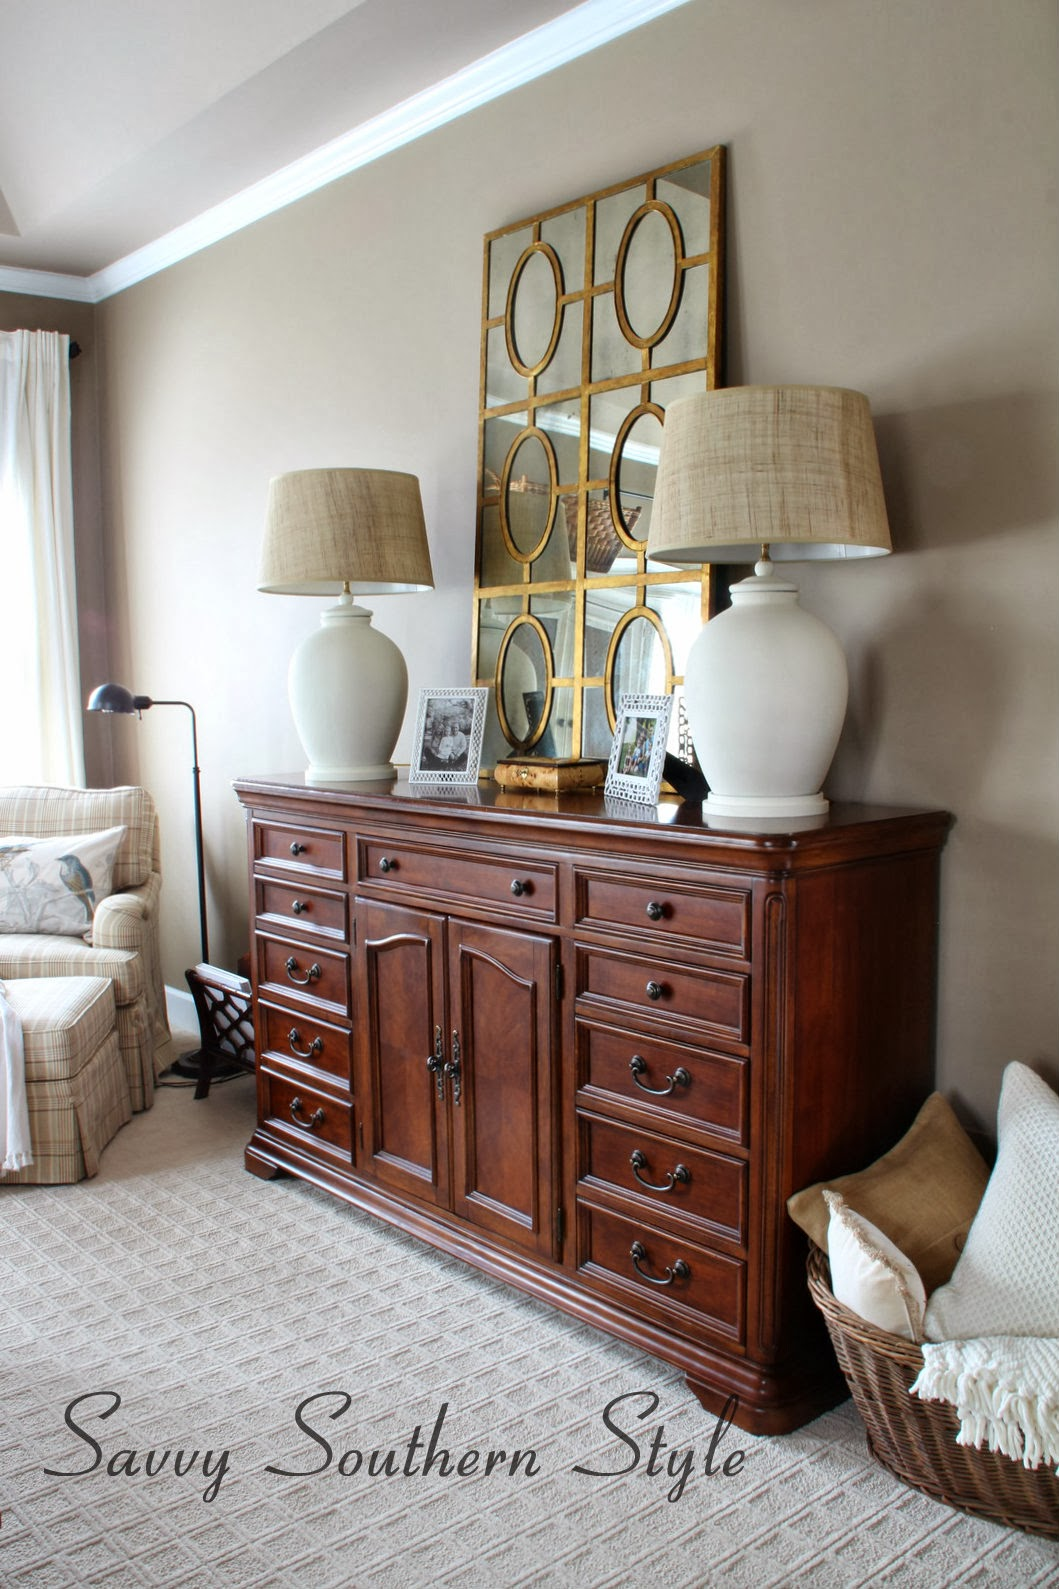 Savvy Southern Style : Master Bedroom Mirror Switch